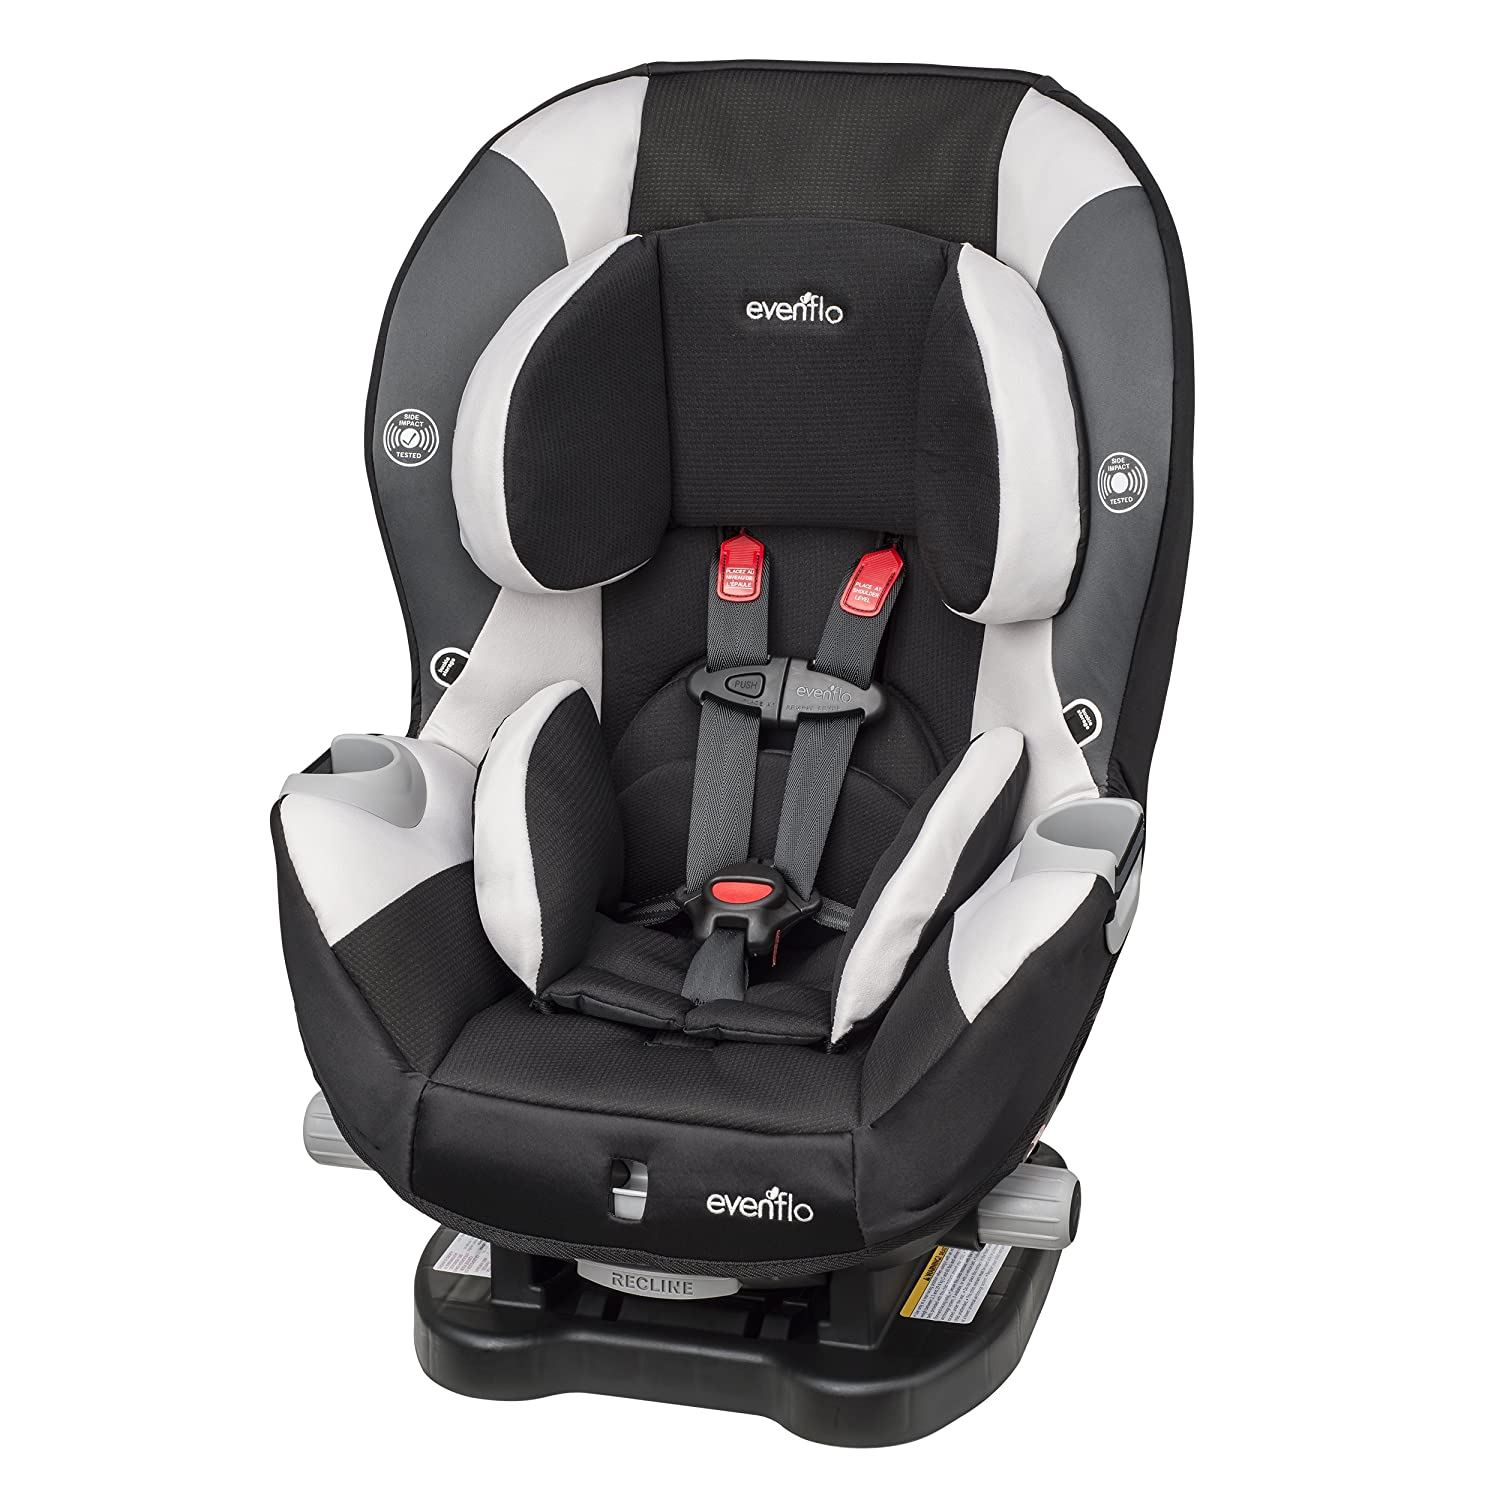 Evenflo Triumph LX Charleston Car Seat, Black/Grey/Beige 38211712